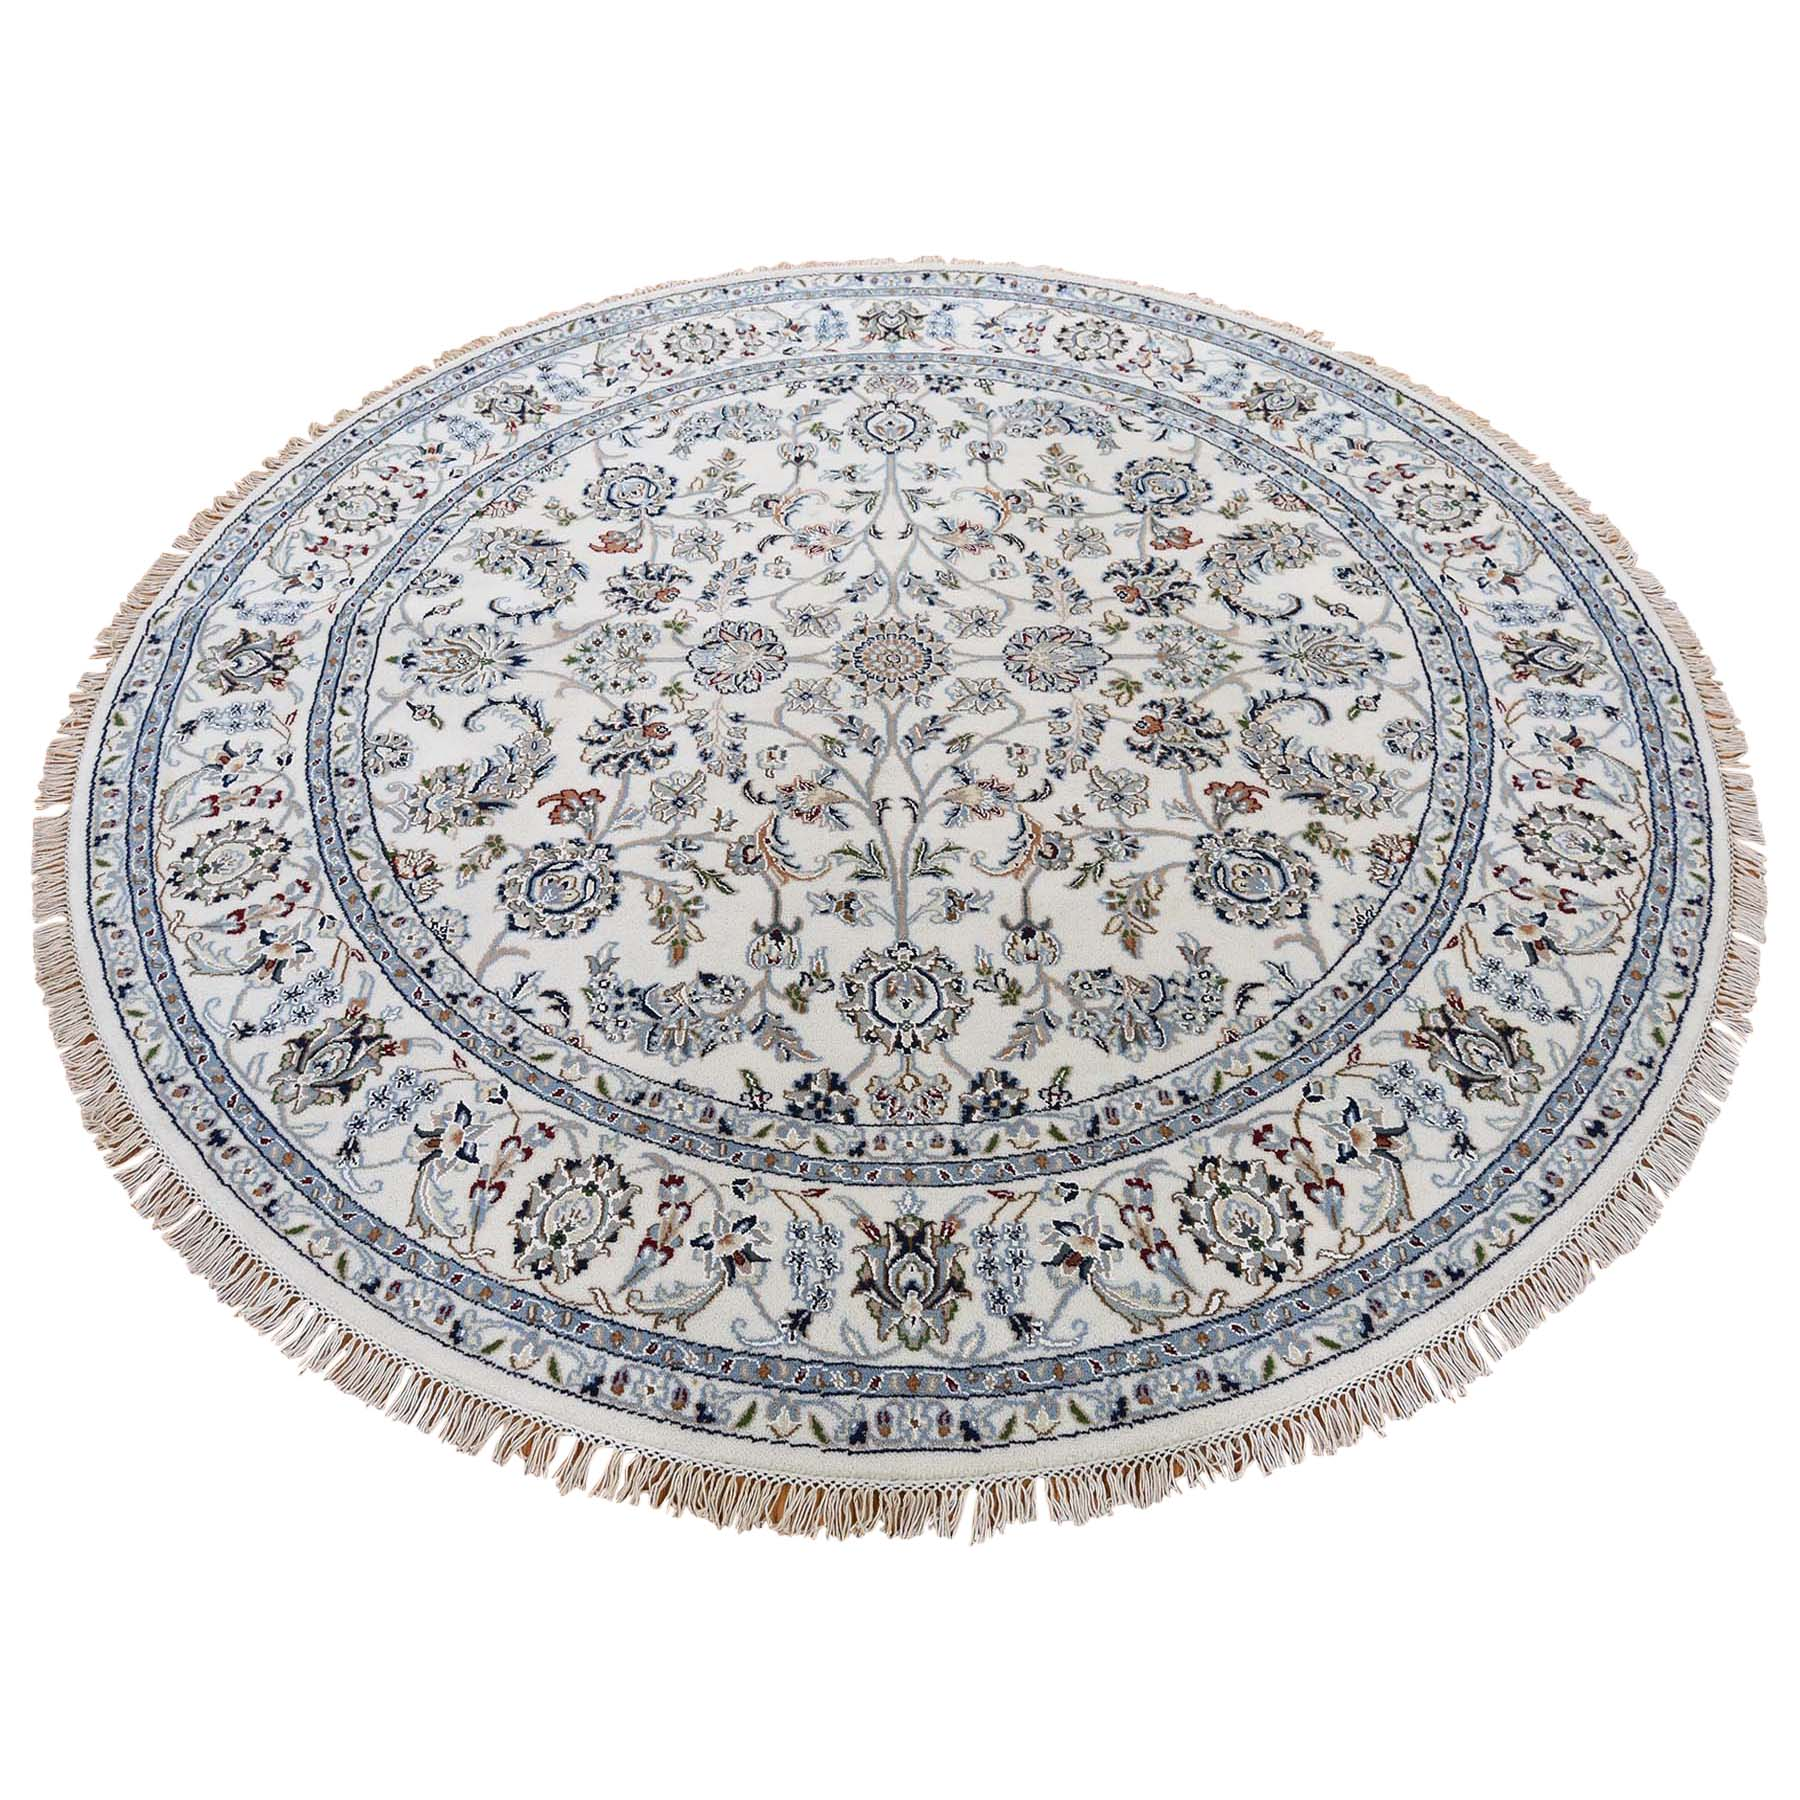 Pirniakan Collection Hand Knotted Ivory Rug No: 192304